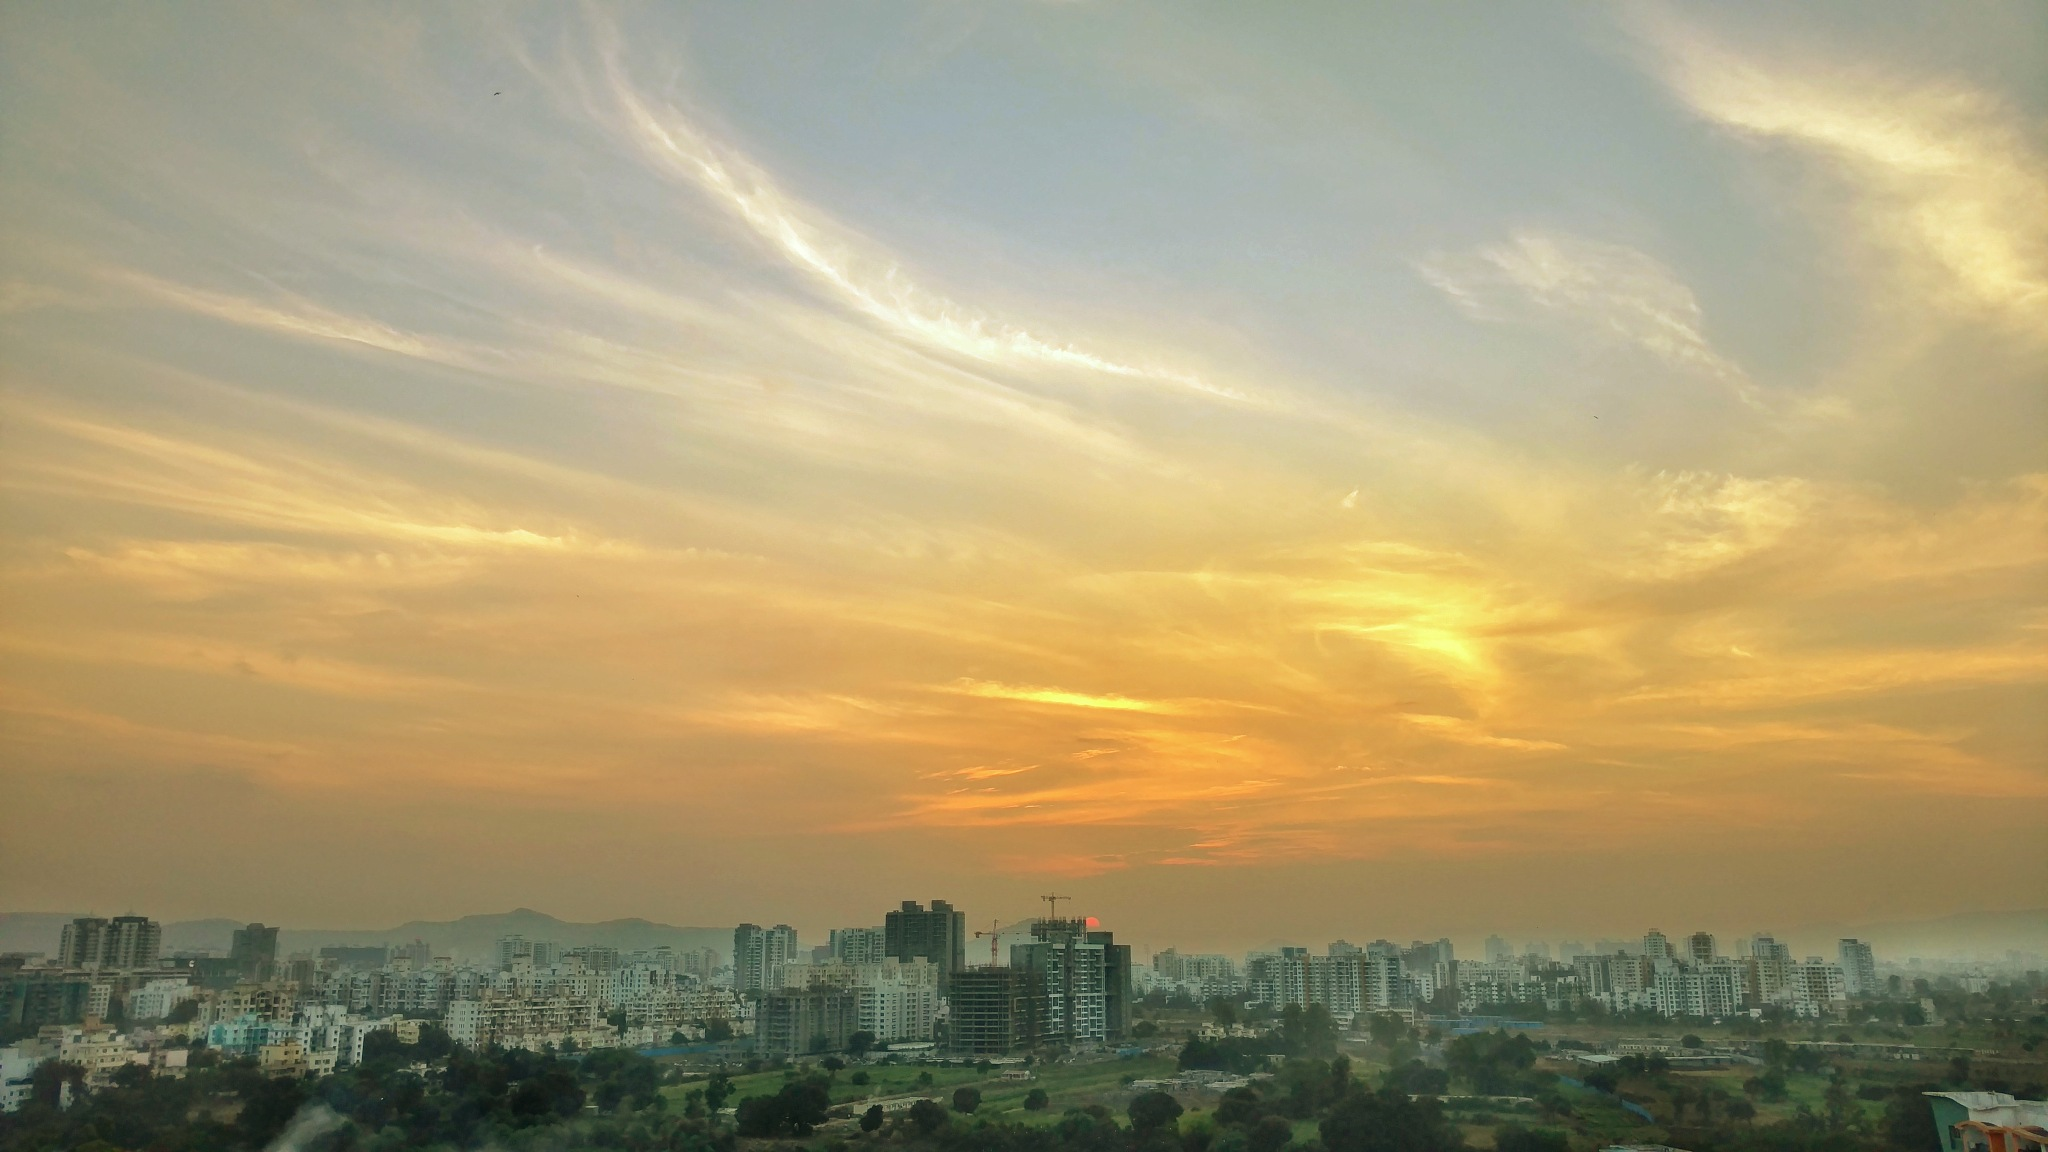 Dreamy City!! by Dhawal Mehta